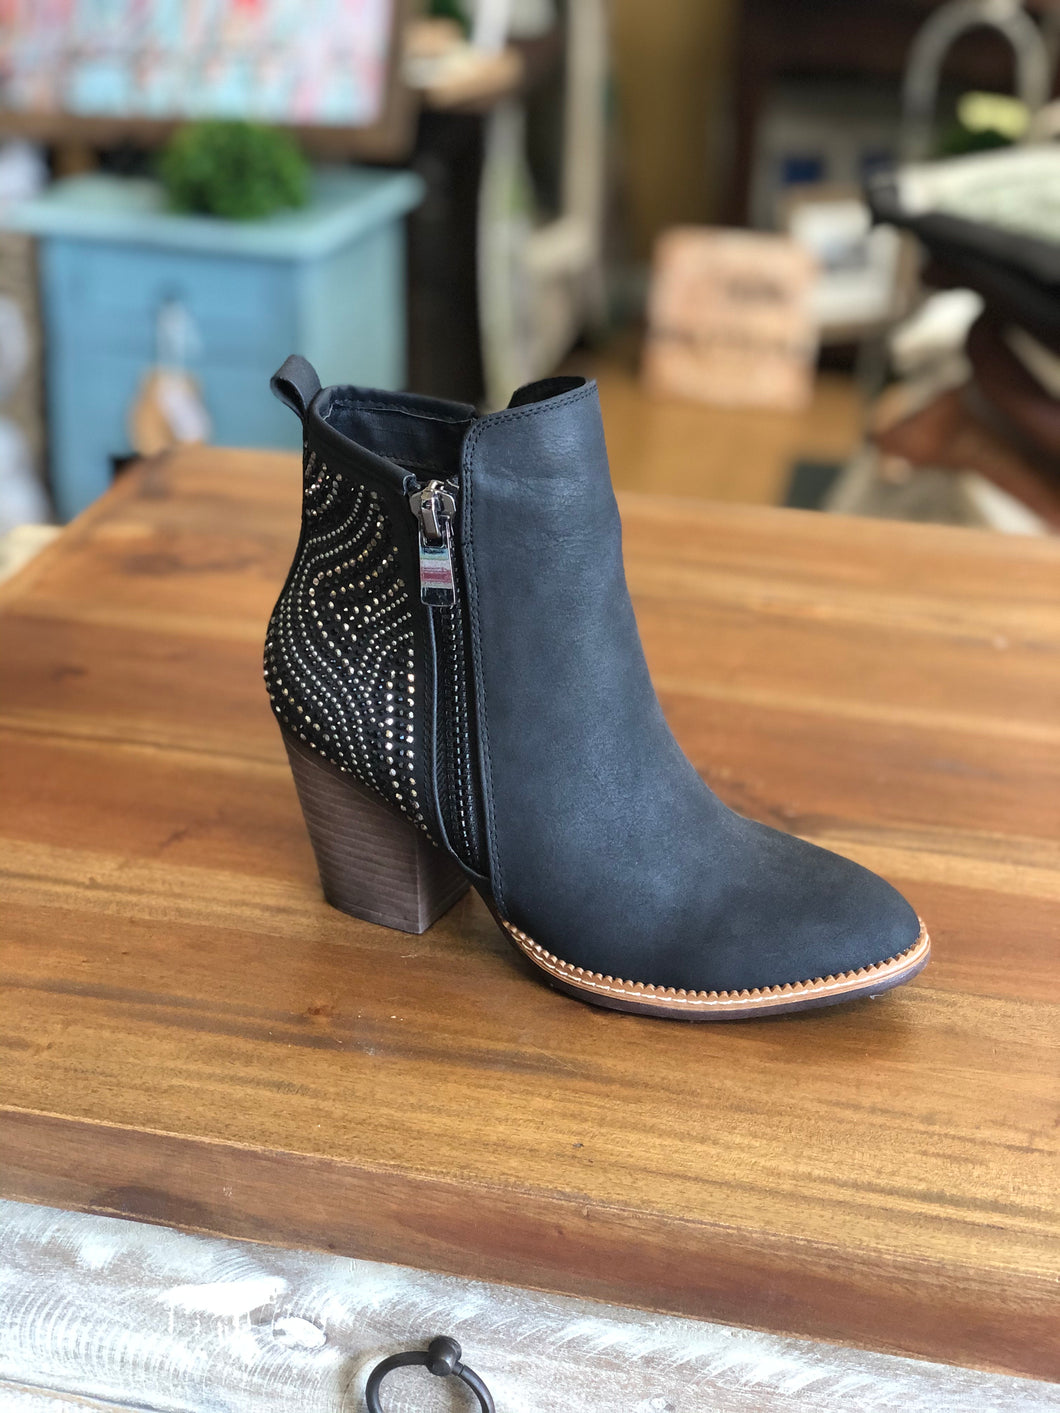 Boutique by Corkys Silky Boots in Black